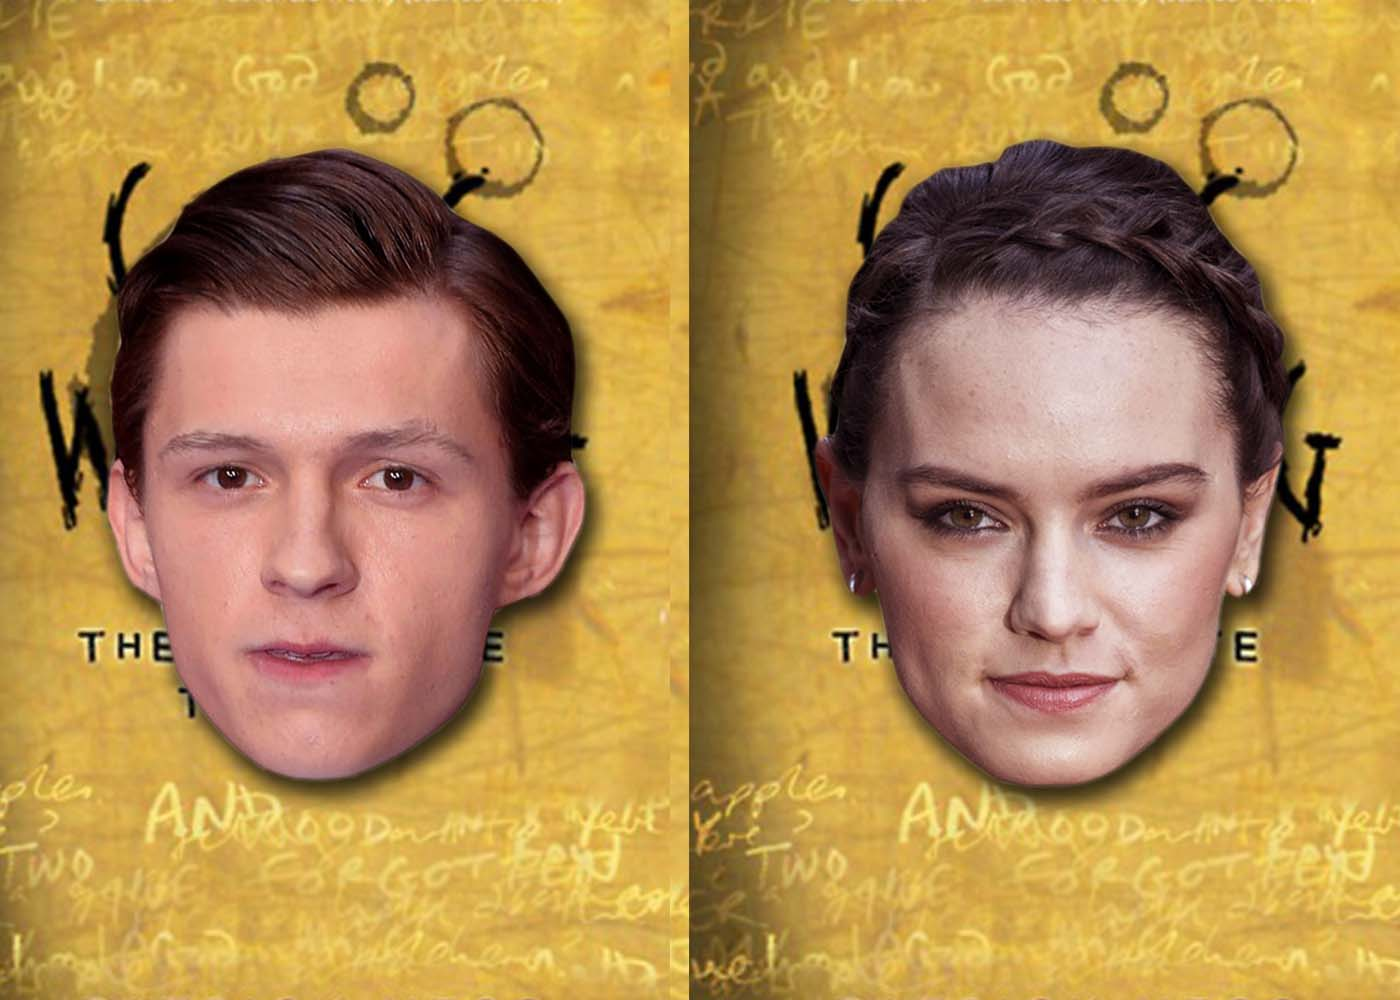 New Chaos Walking Pics reveal Tom Holland and Daisy Ridley